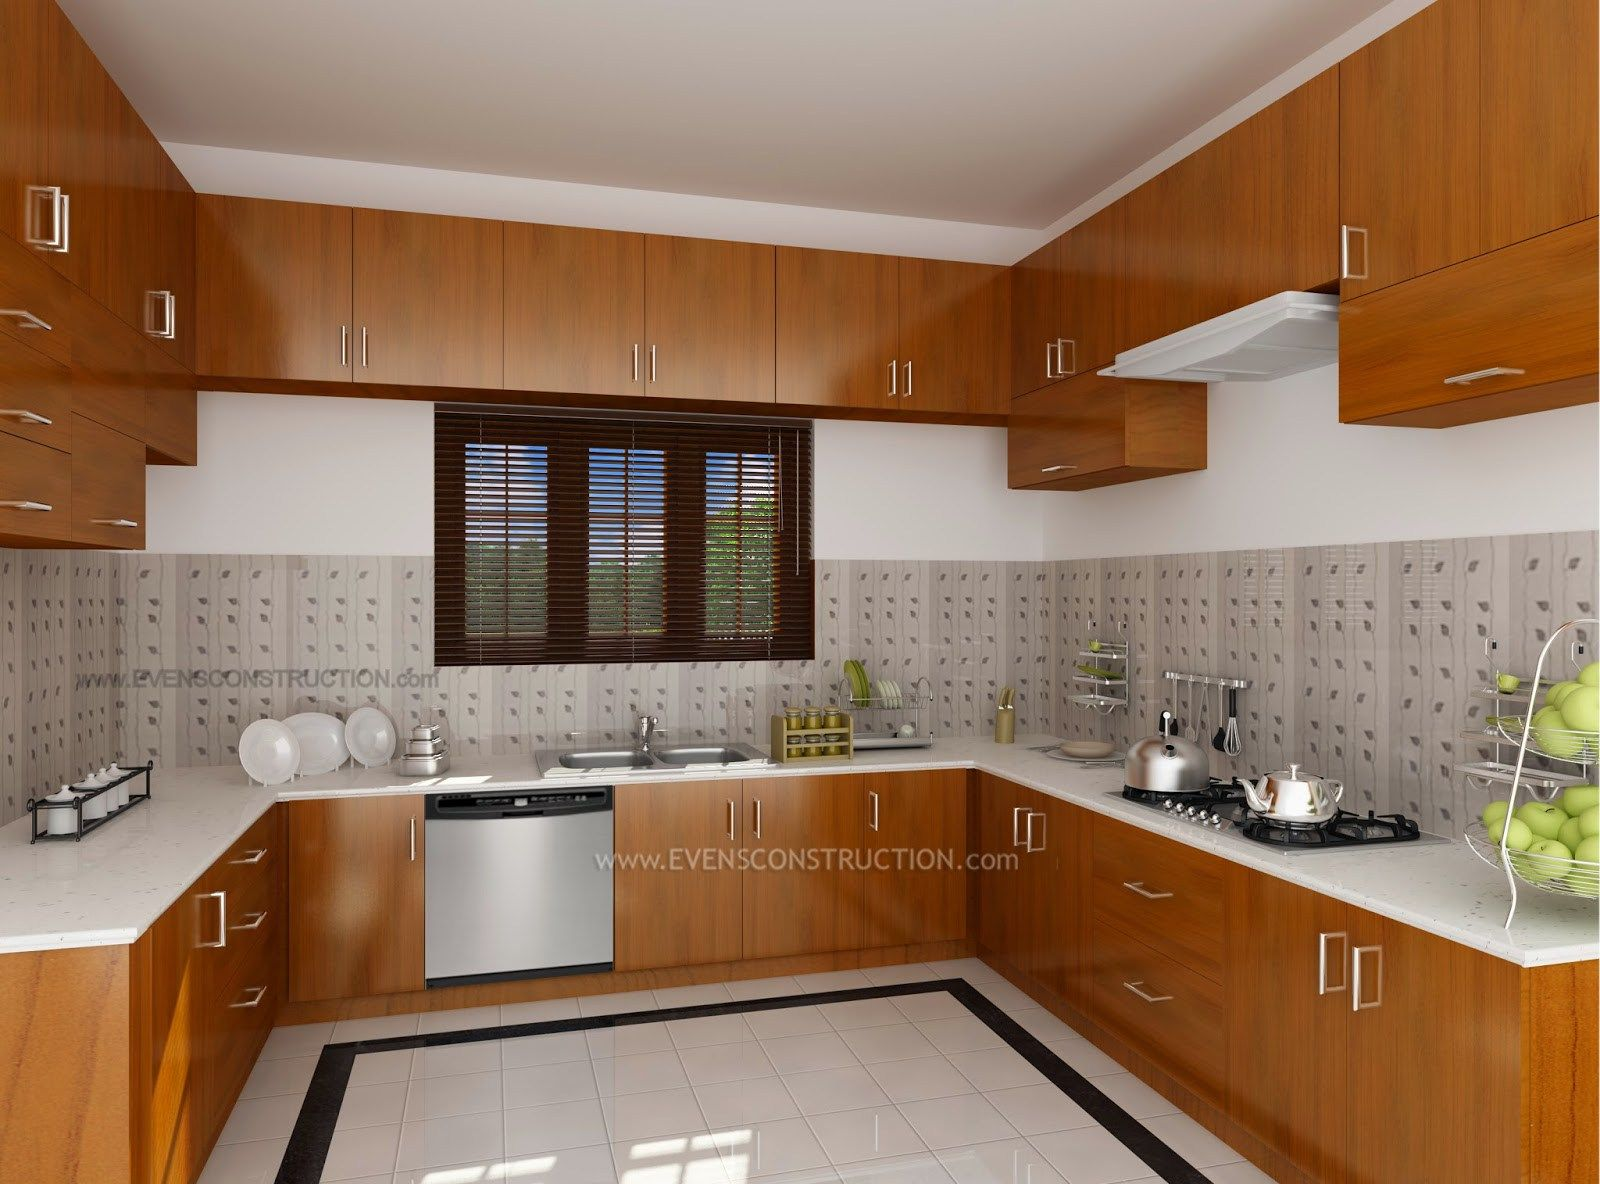 Design interior kitchen home kerala modern house kitchen for Pictures of new kitchens designs